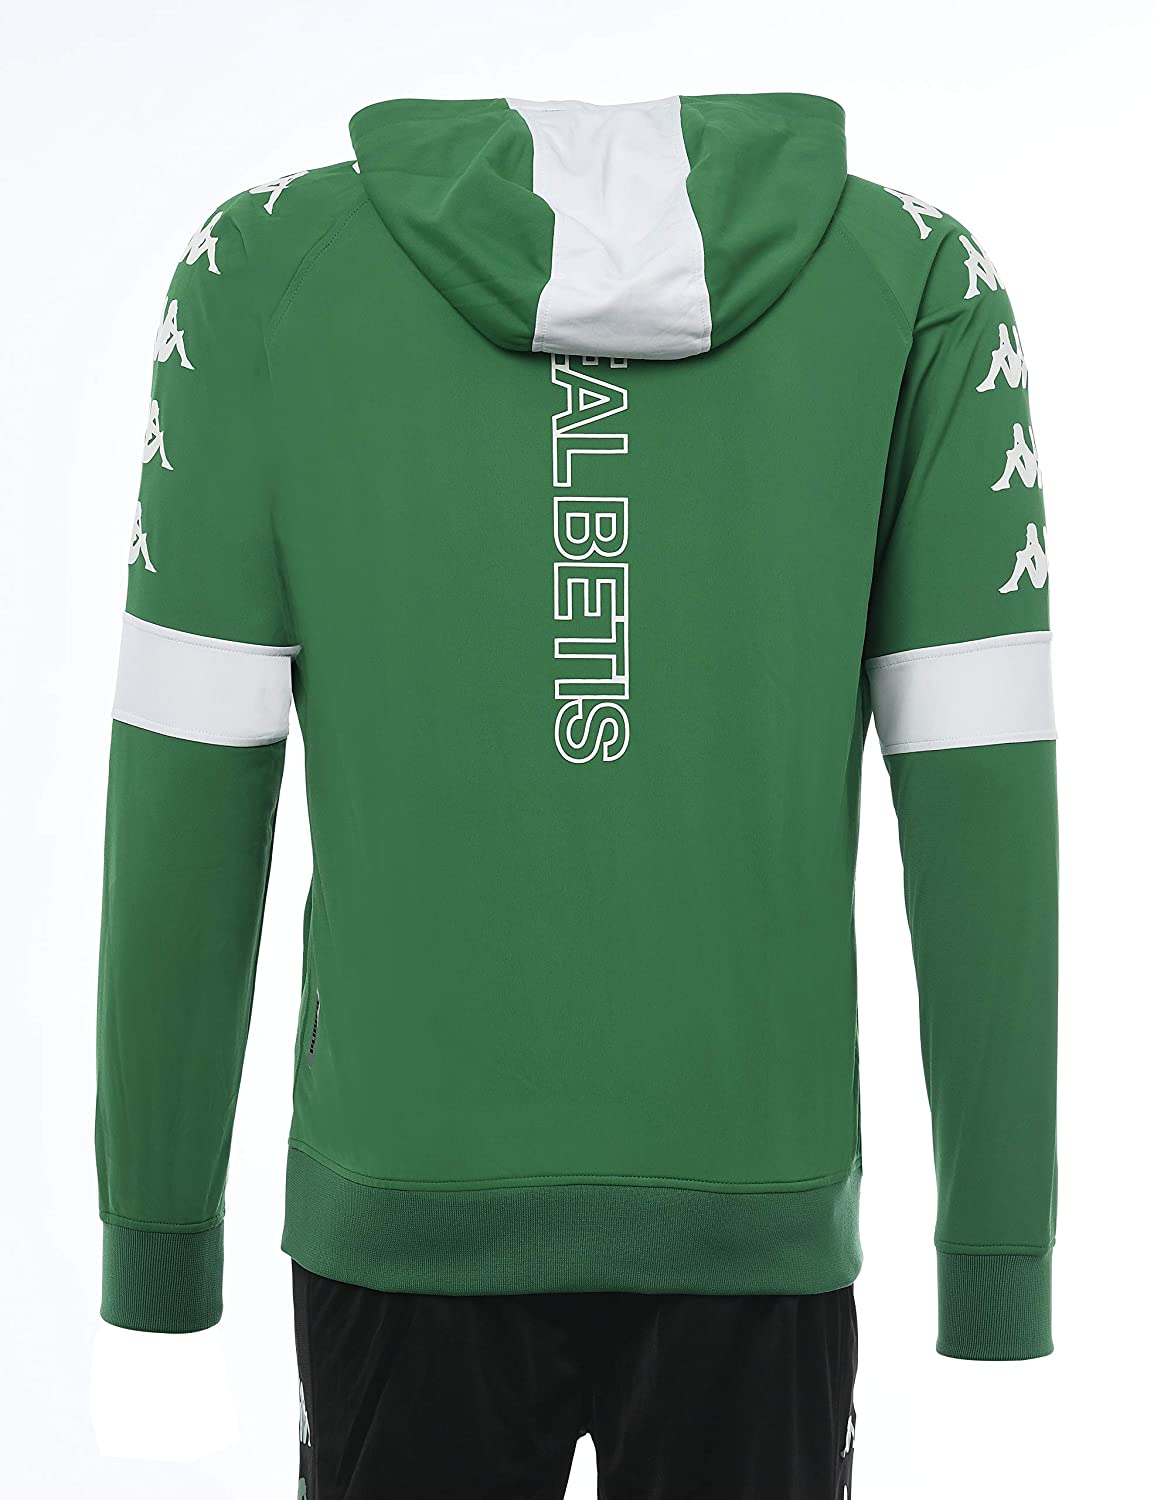 Kappa ABEOD 3 Betis Chándal, Hombre, Neutro, XL: Amazon.es ...